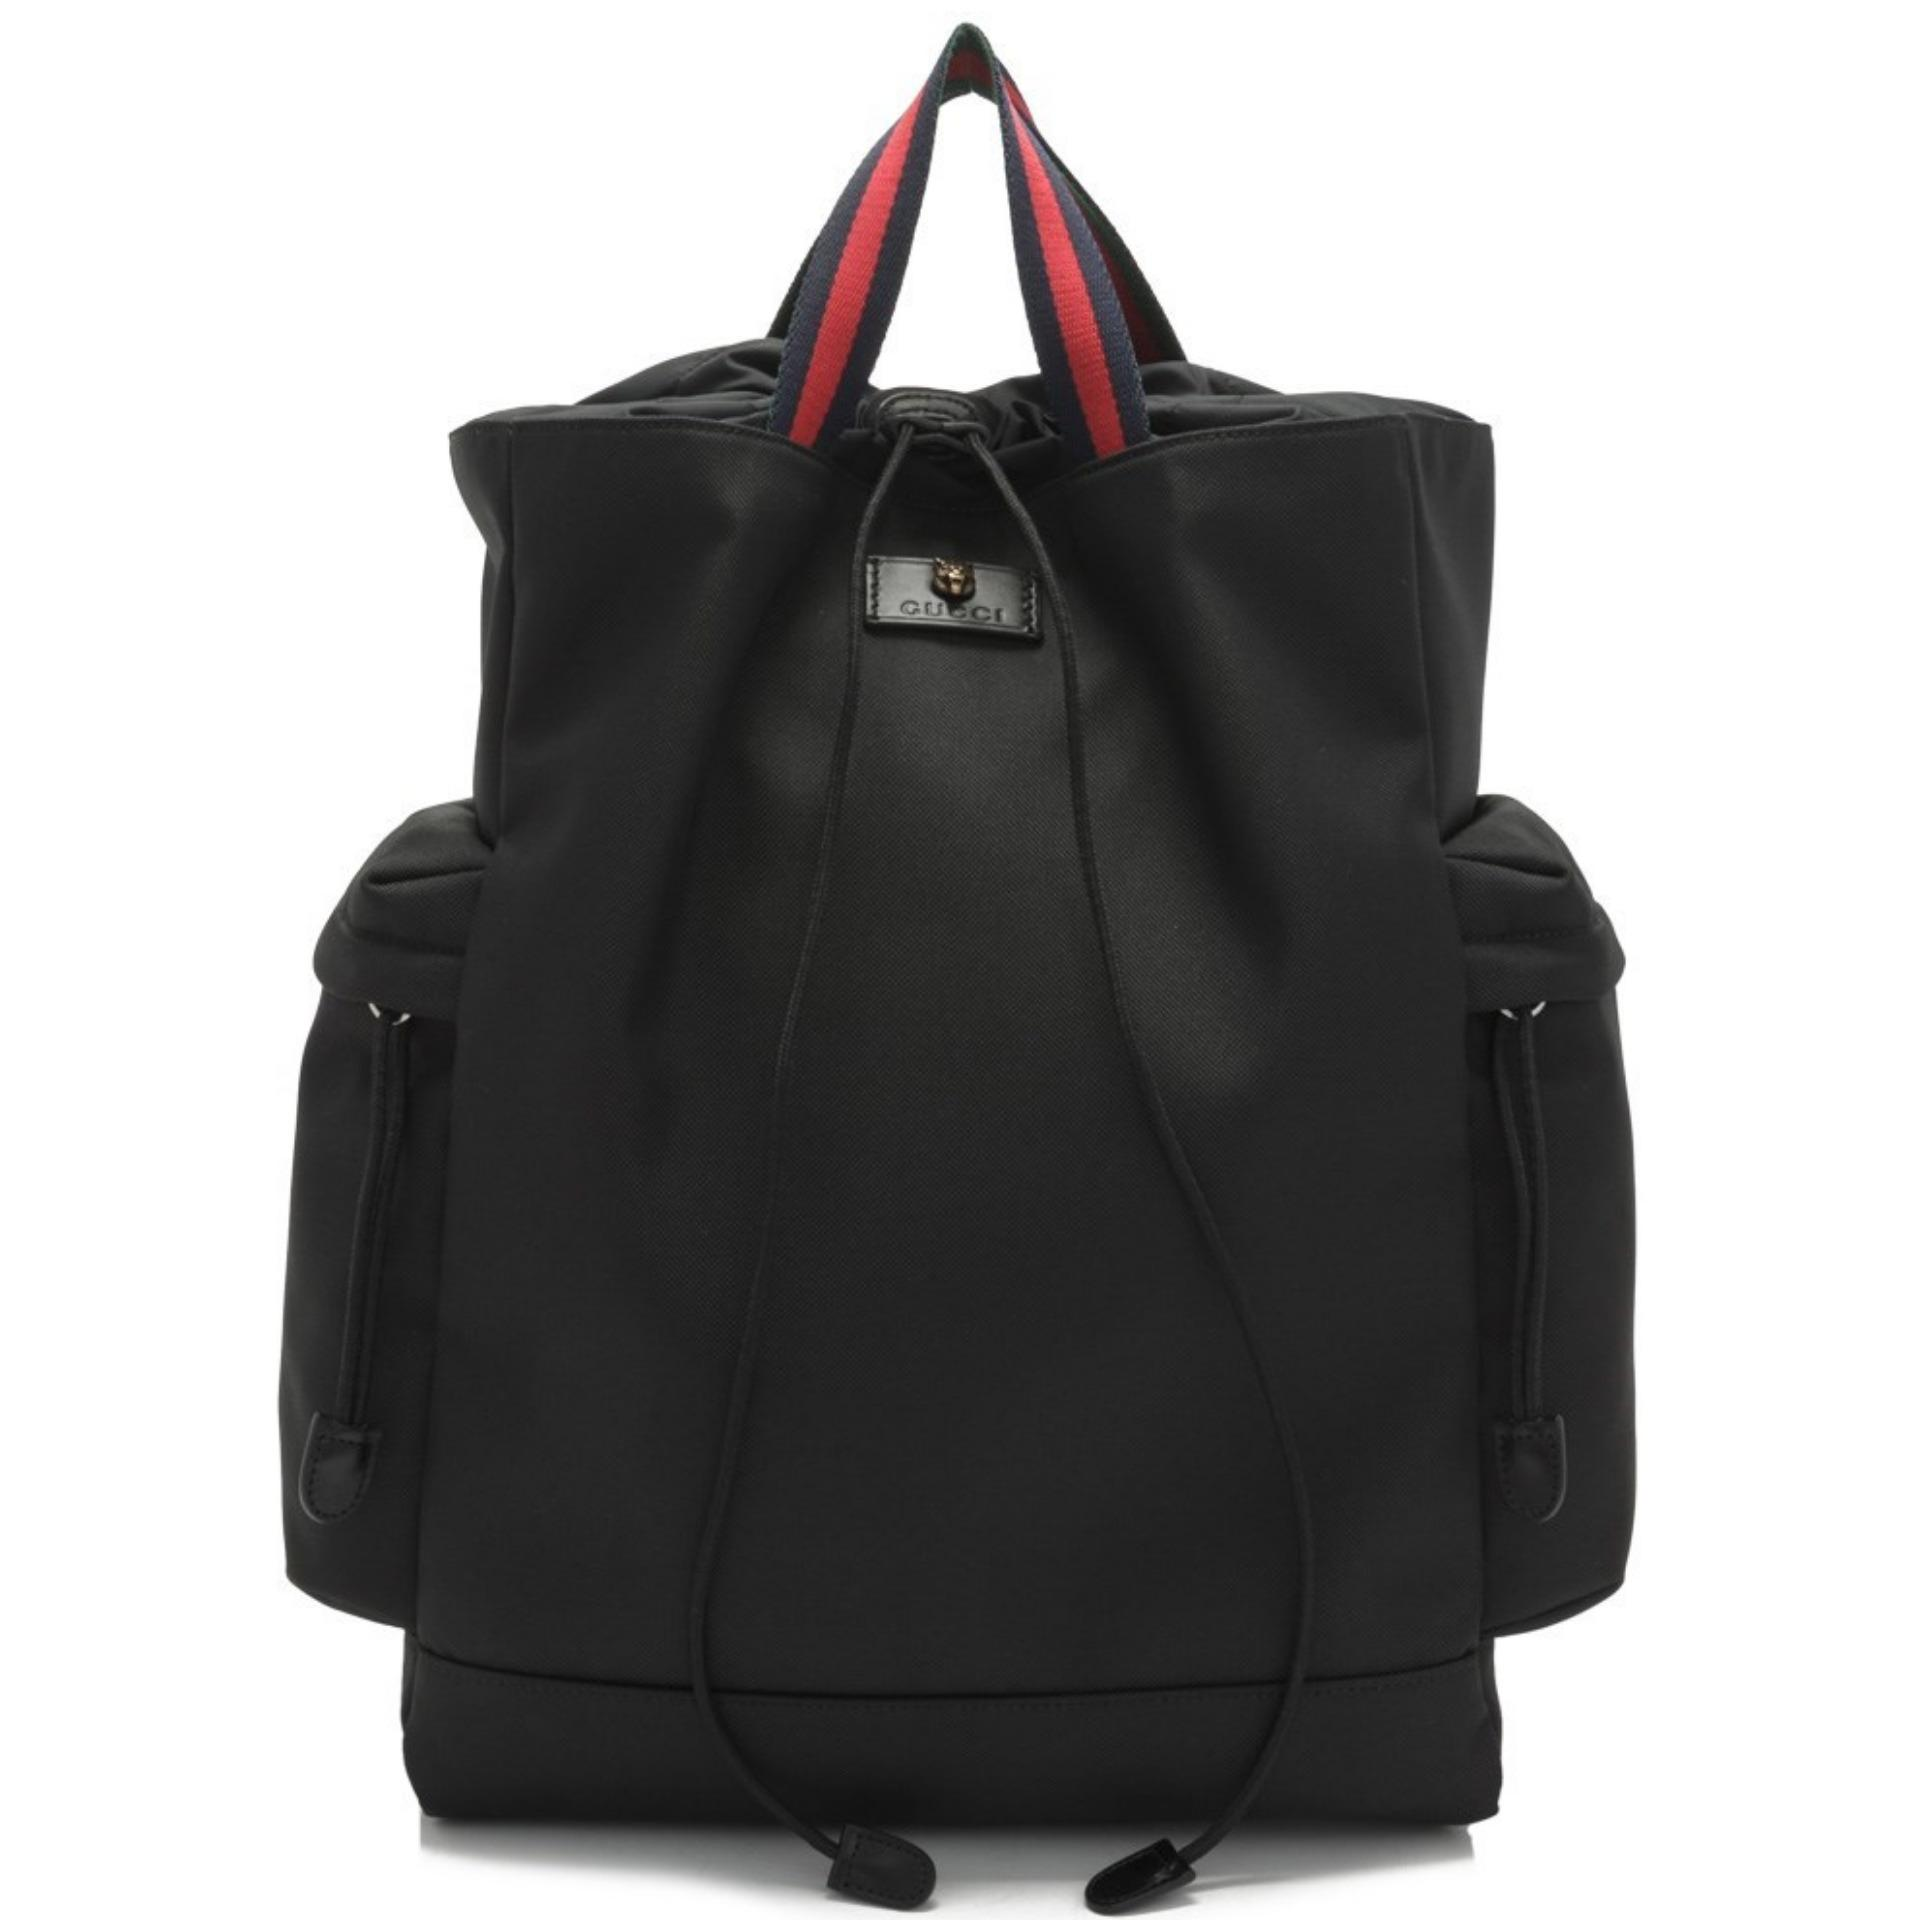 4ad399c4ee77 Gucci Techno Canvas Drawstring Backpack (Black) # 450979K1NCX8545